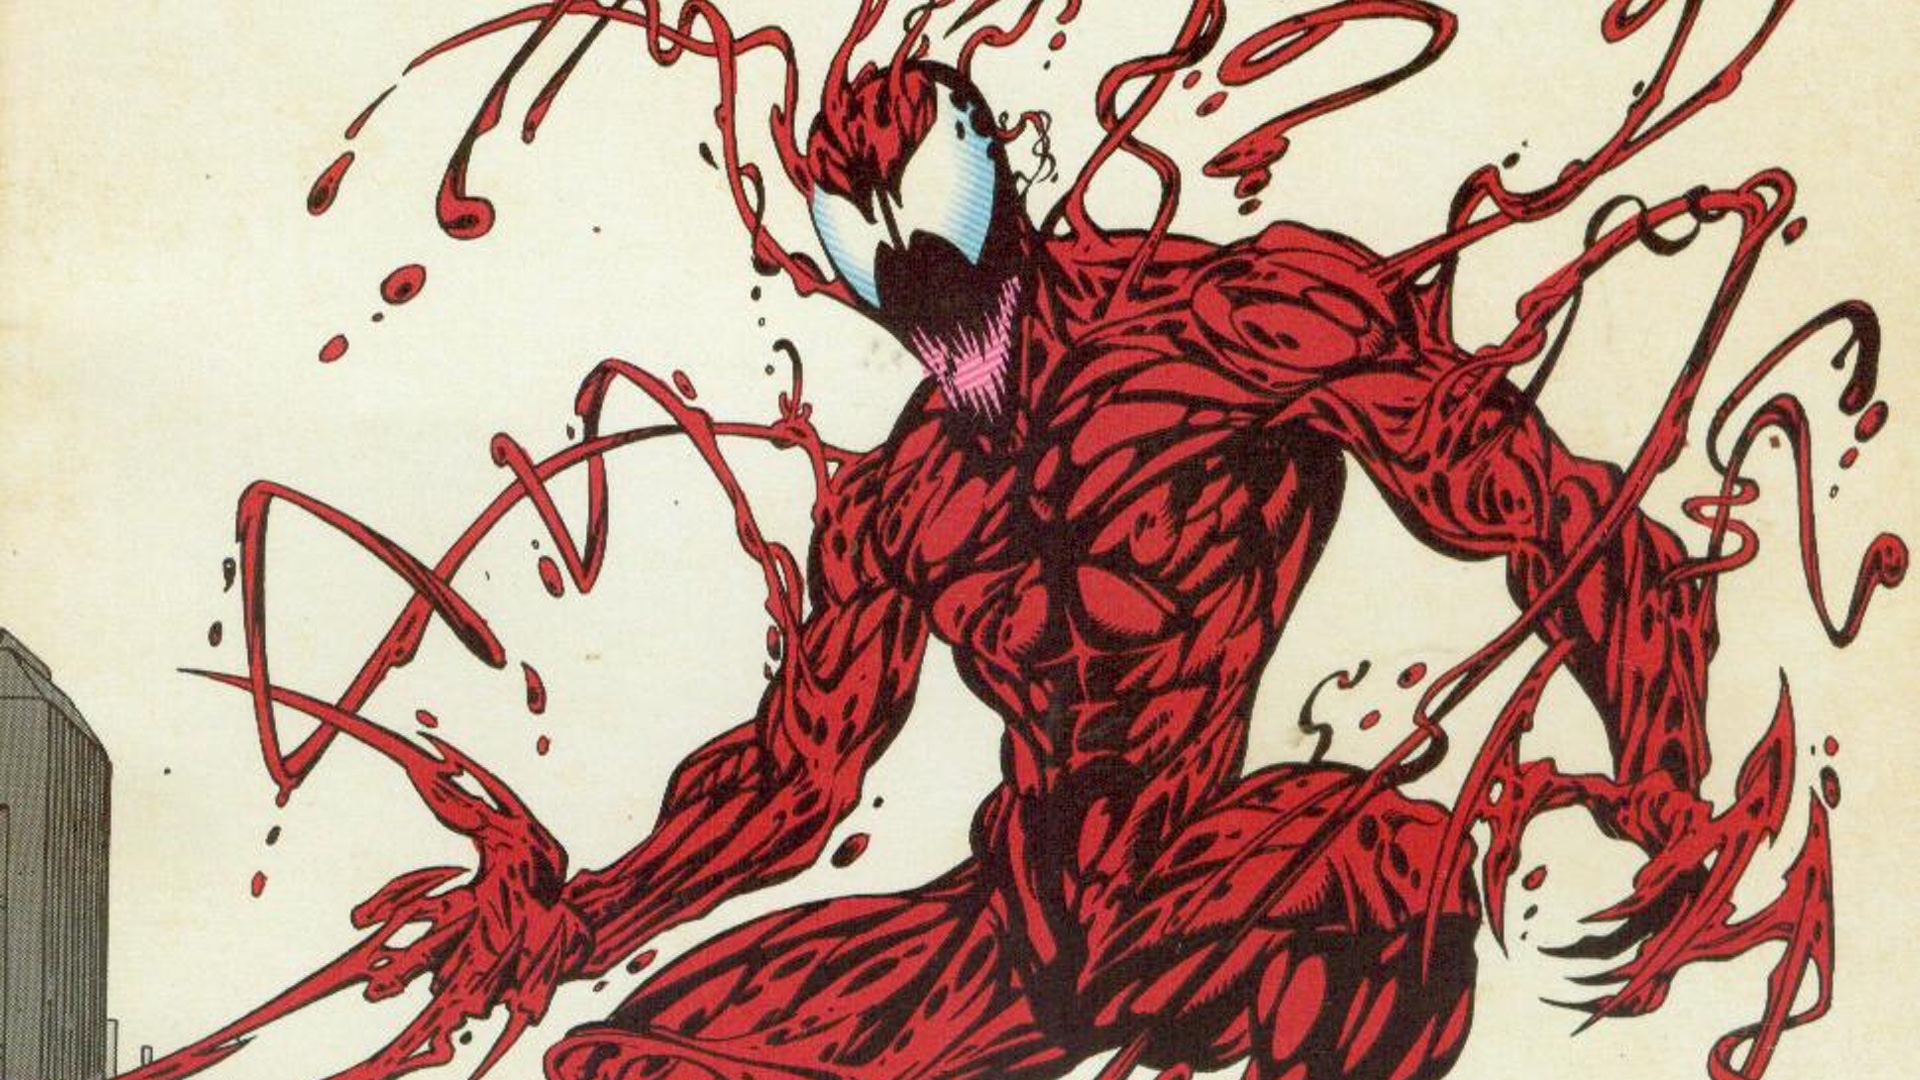 Carnage the son of Venom and not a totla Joker rip-off